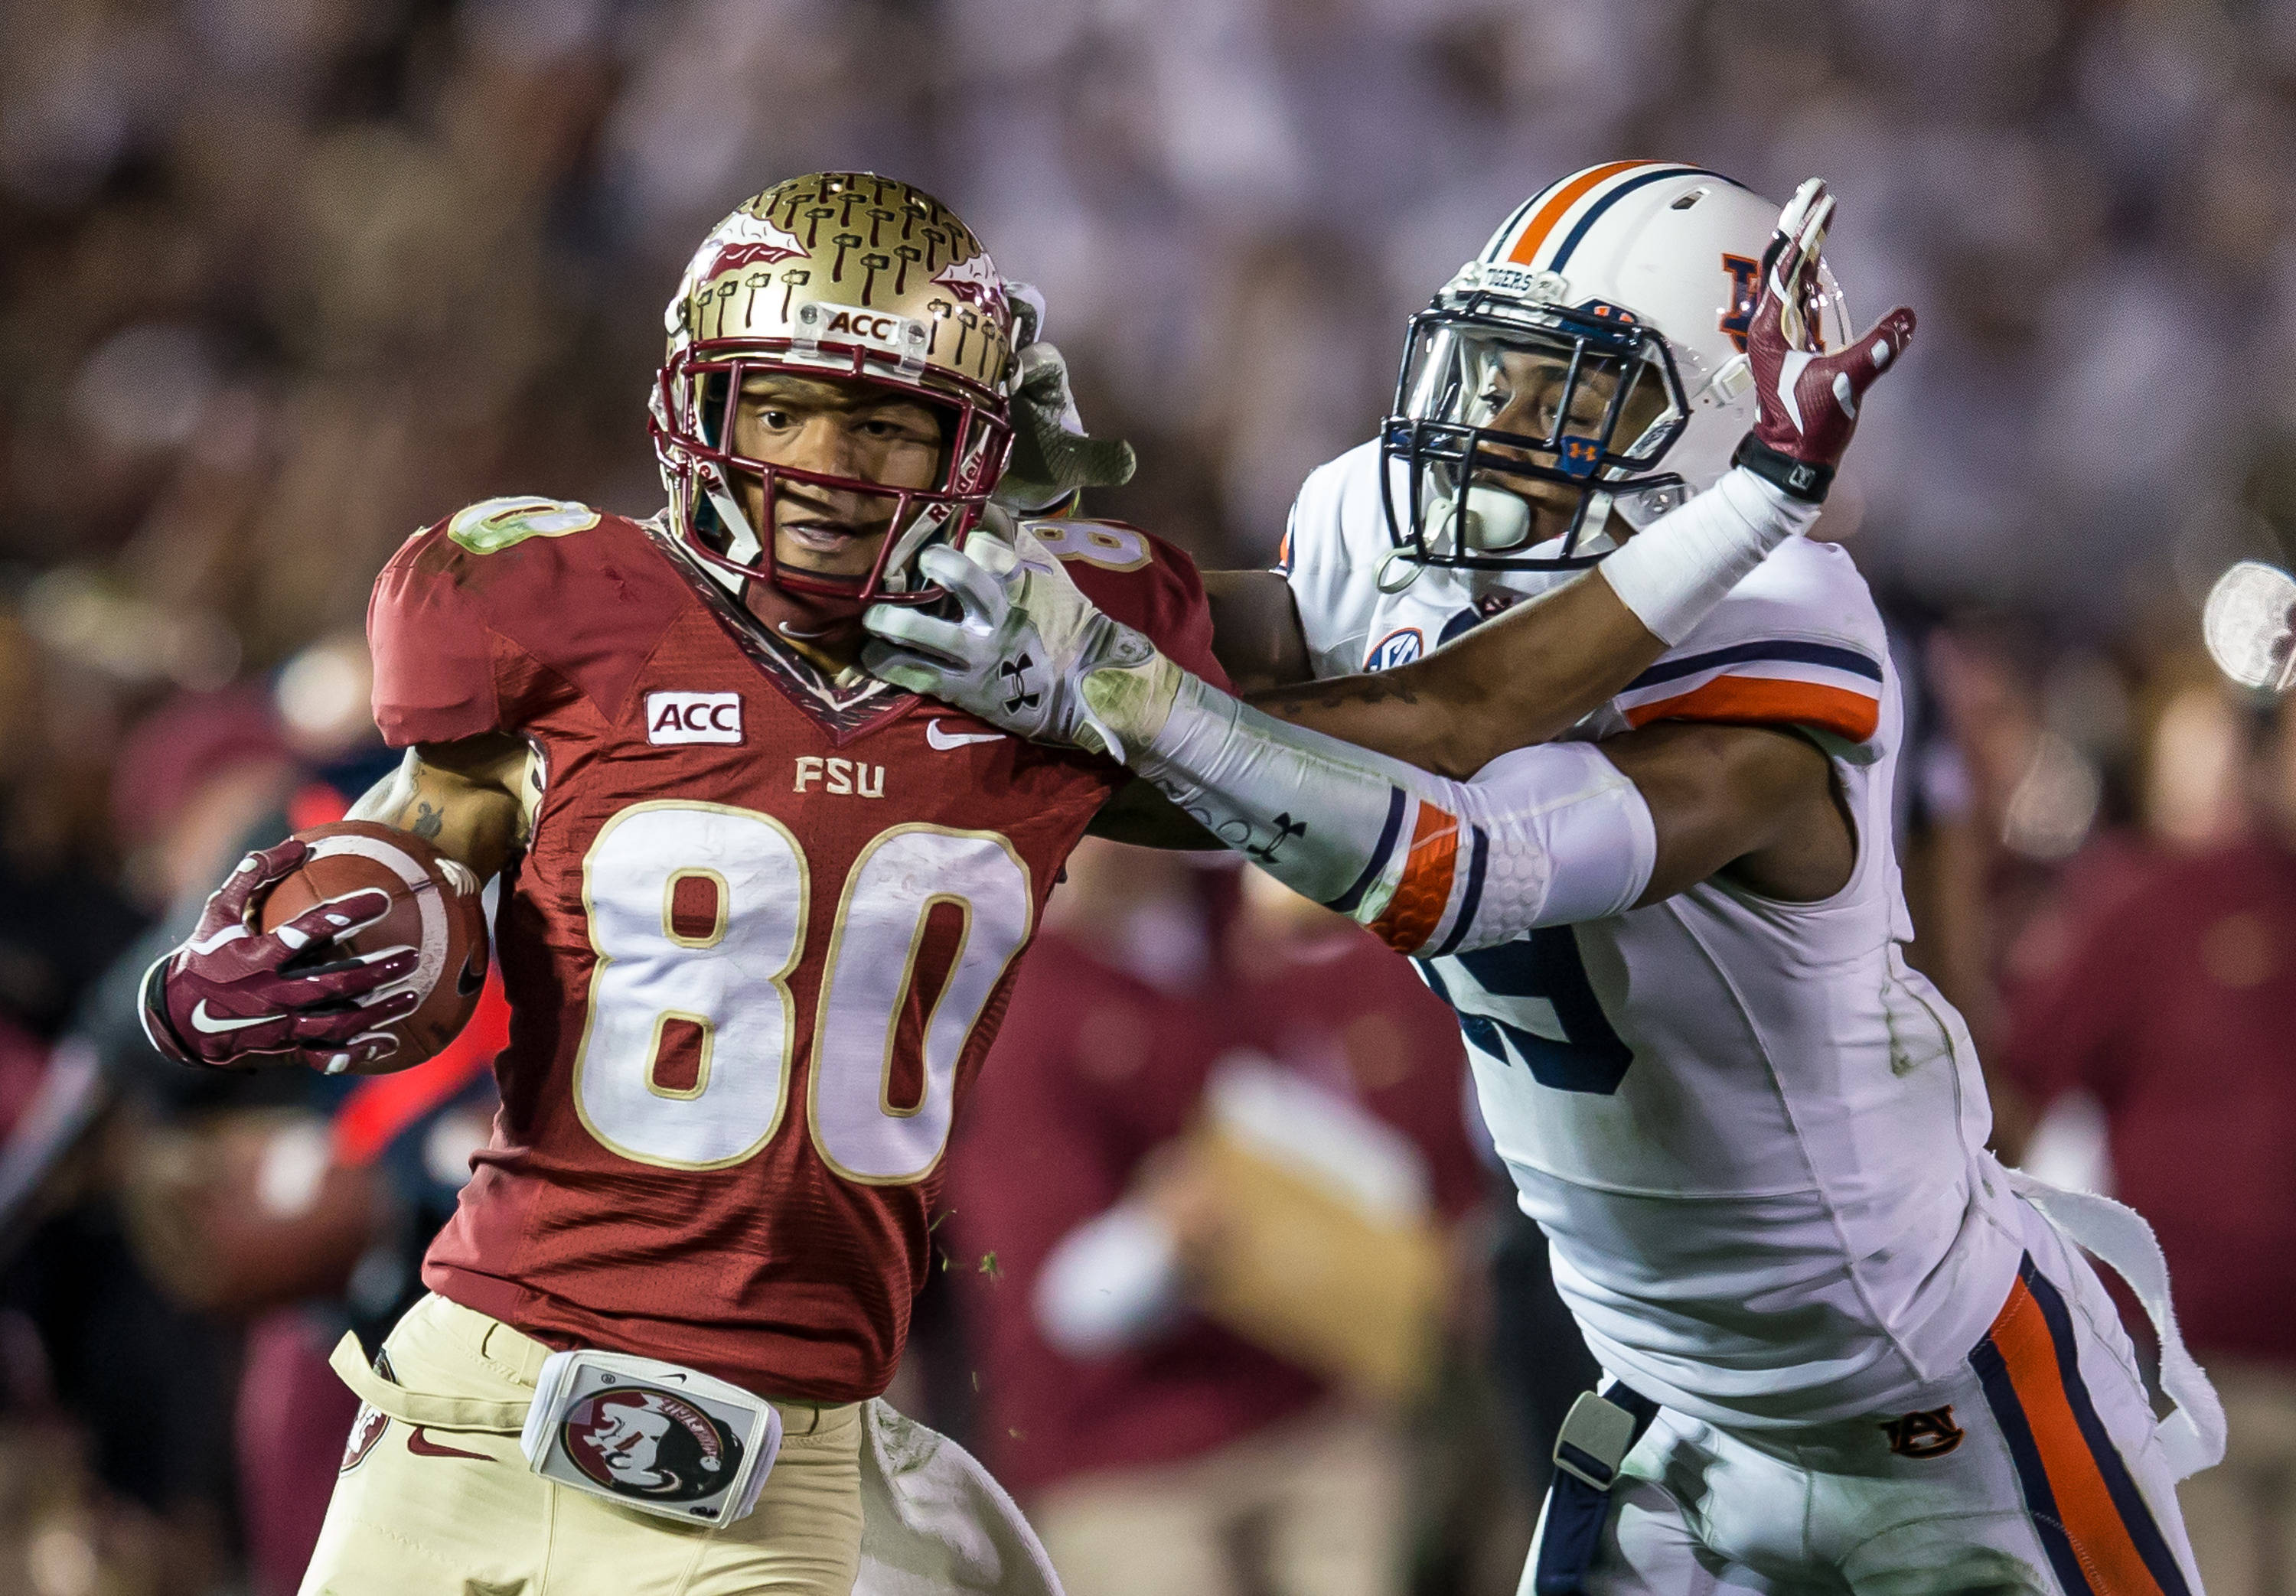 Rashad Greene (80) is brought down by his facemask during the game winning TD drive.